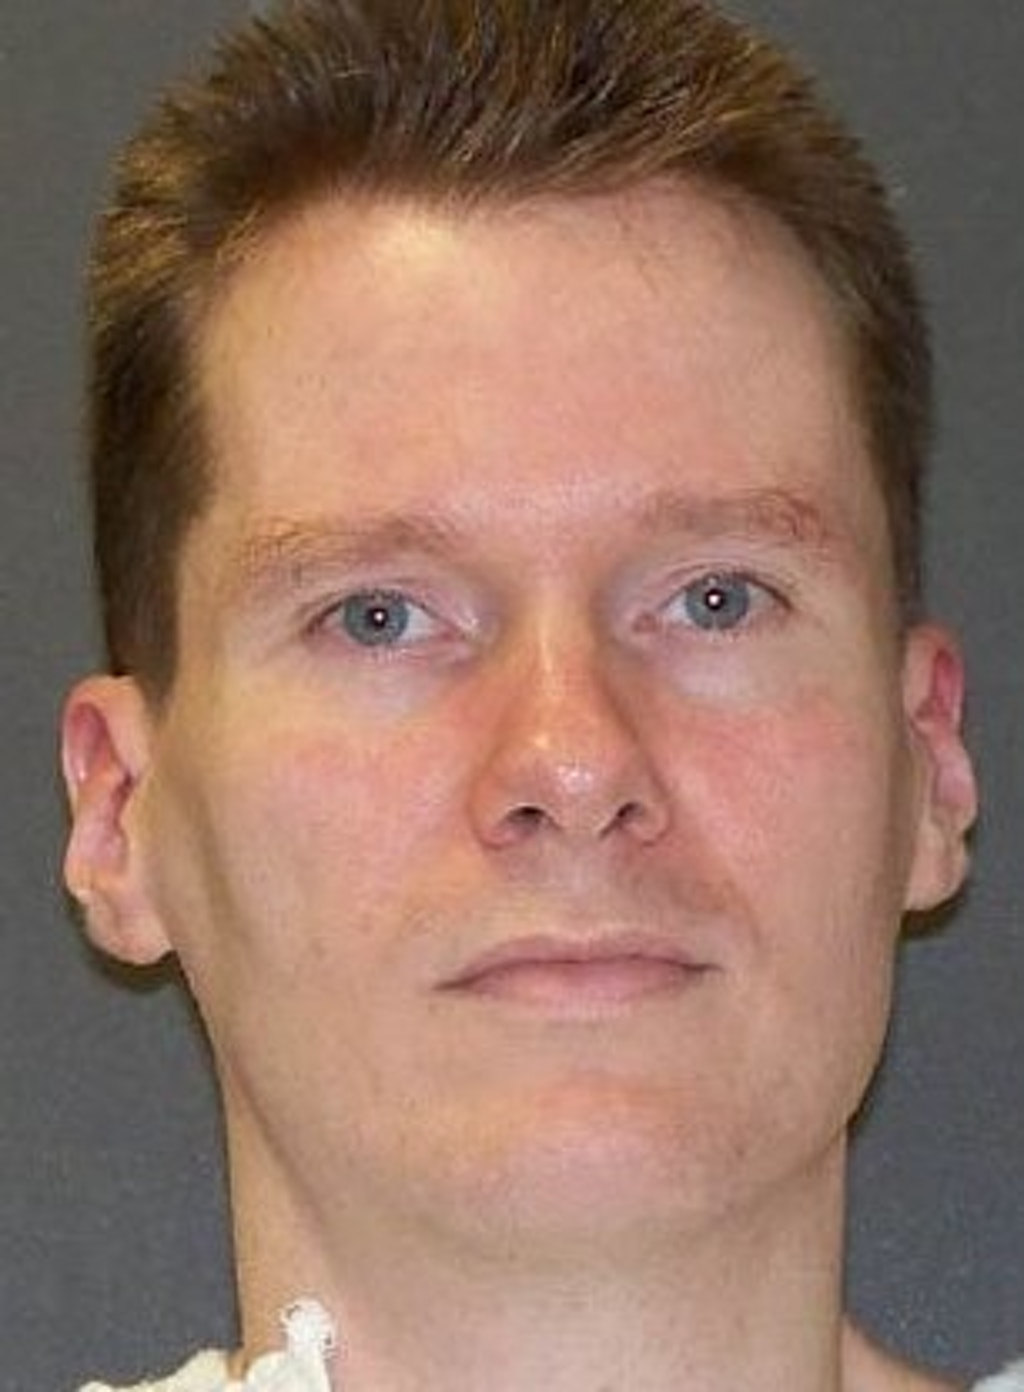 Billy Joe Wardlow Faces Execution in Texas Based on False Evidence of Future Dangerousness